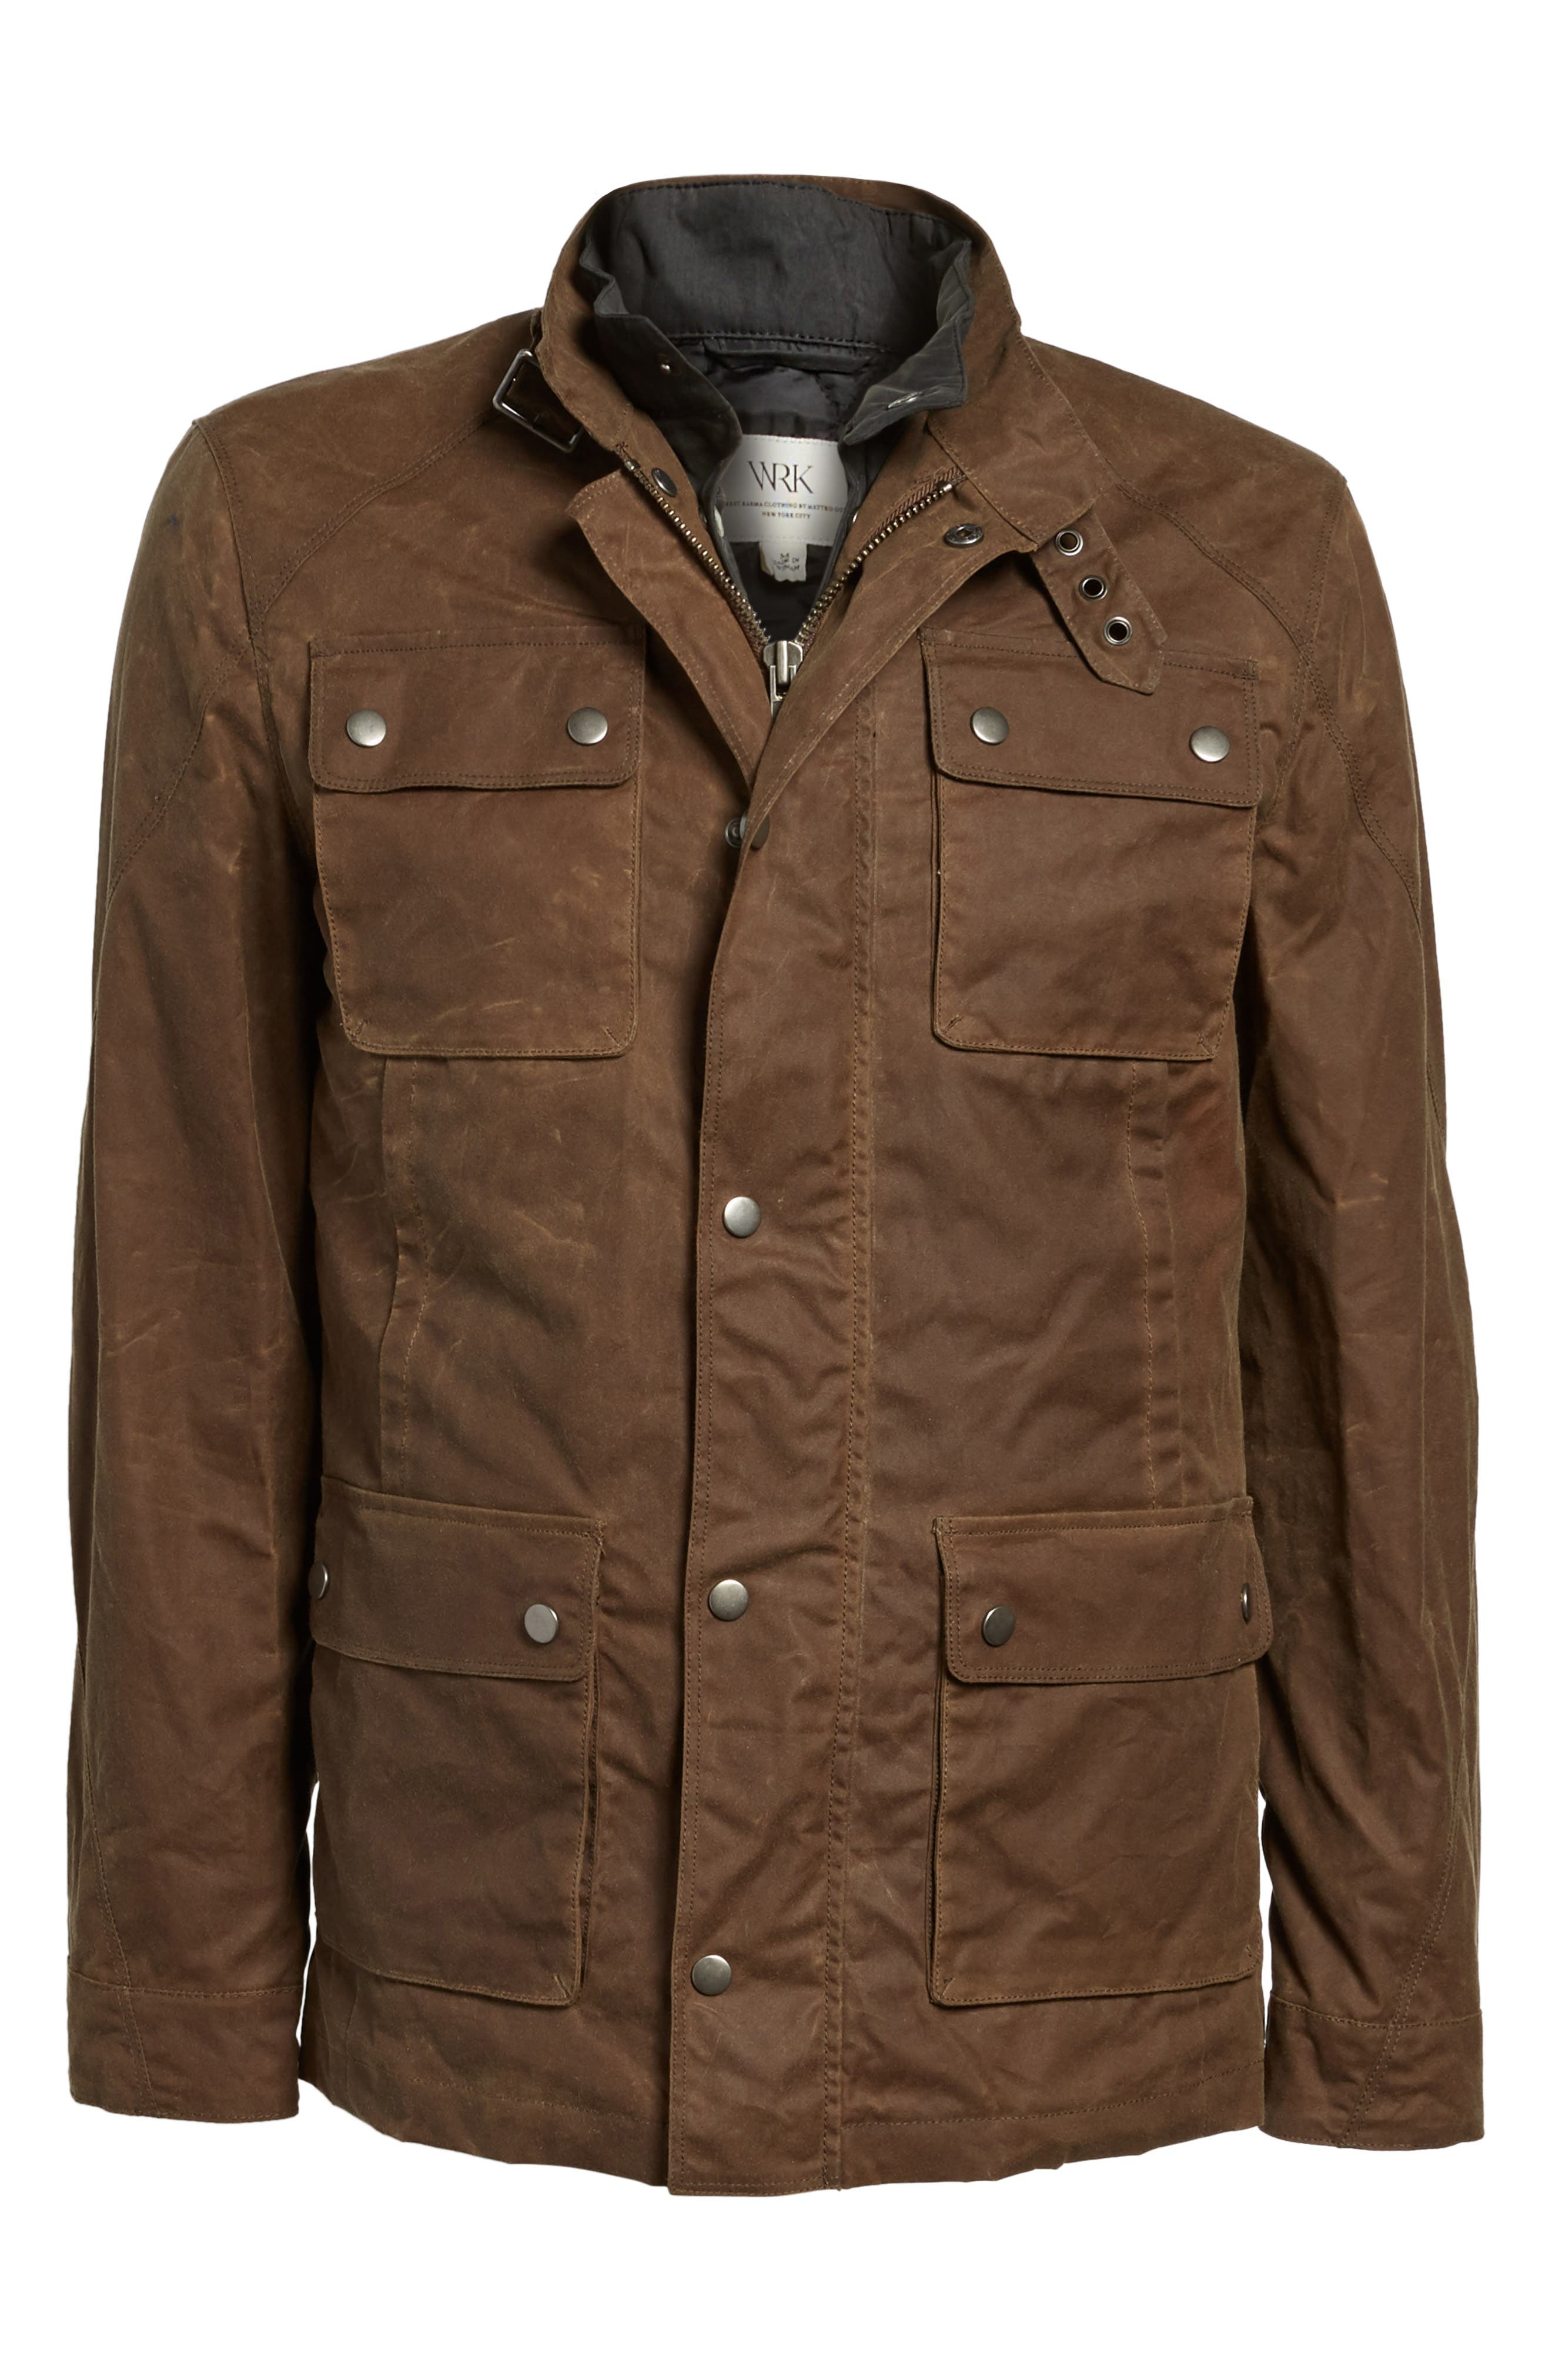 3-in-1 Waxed Cotton Jacket with Removable Vest,                             Alternate thumbnail 5, color,                             250